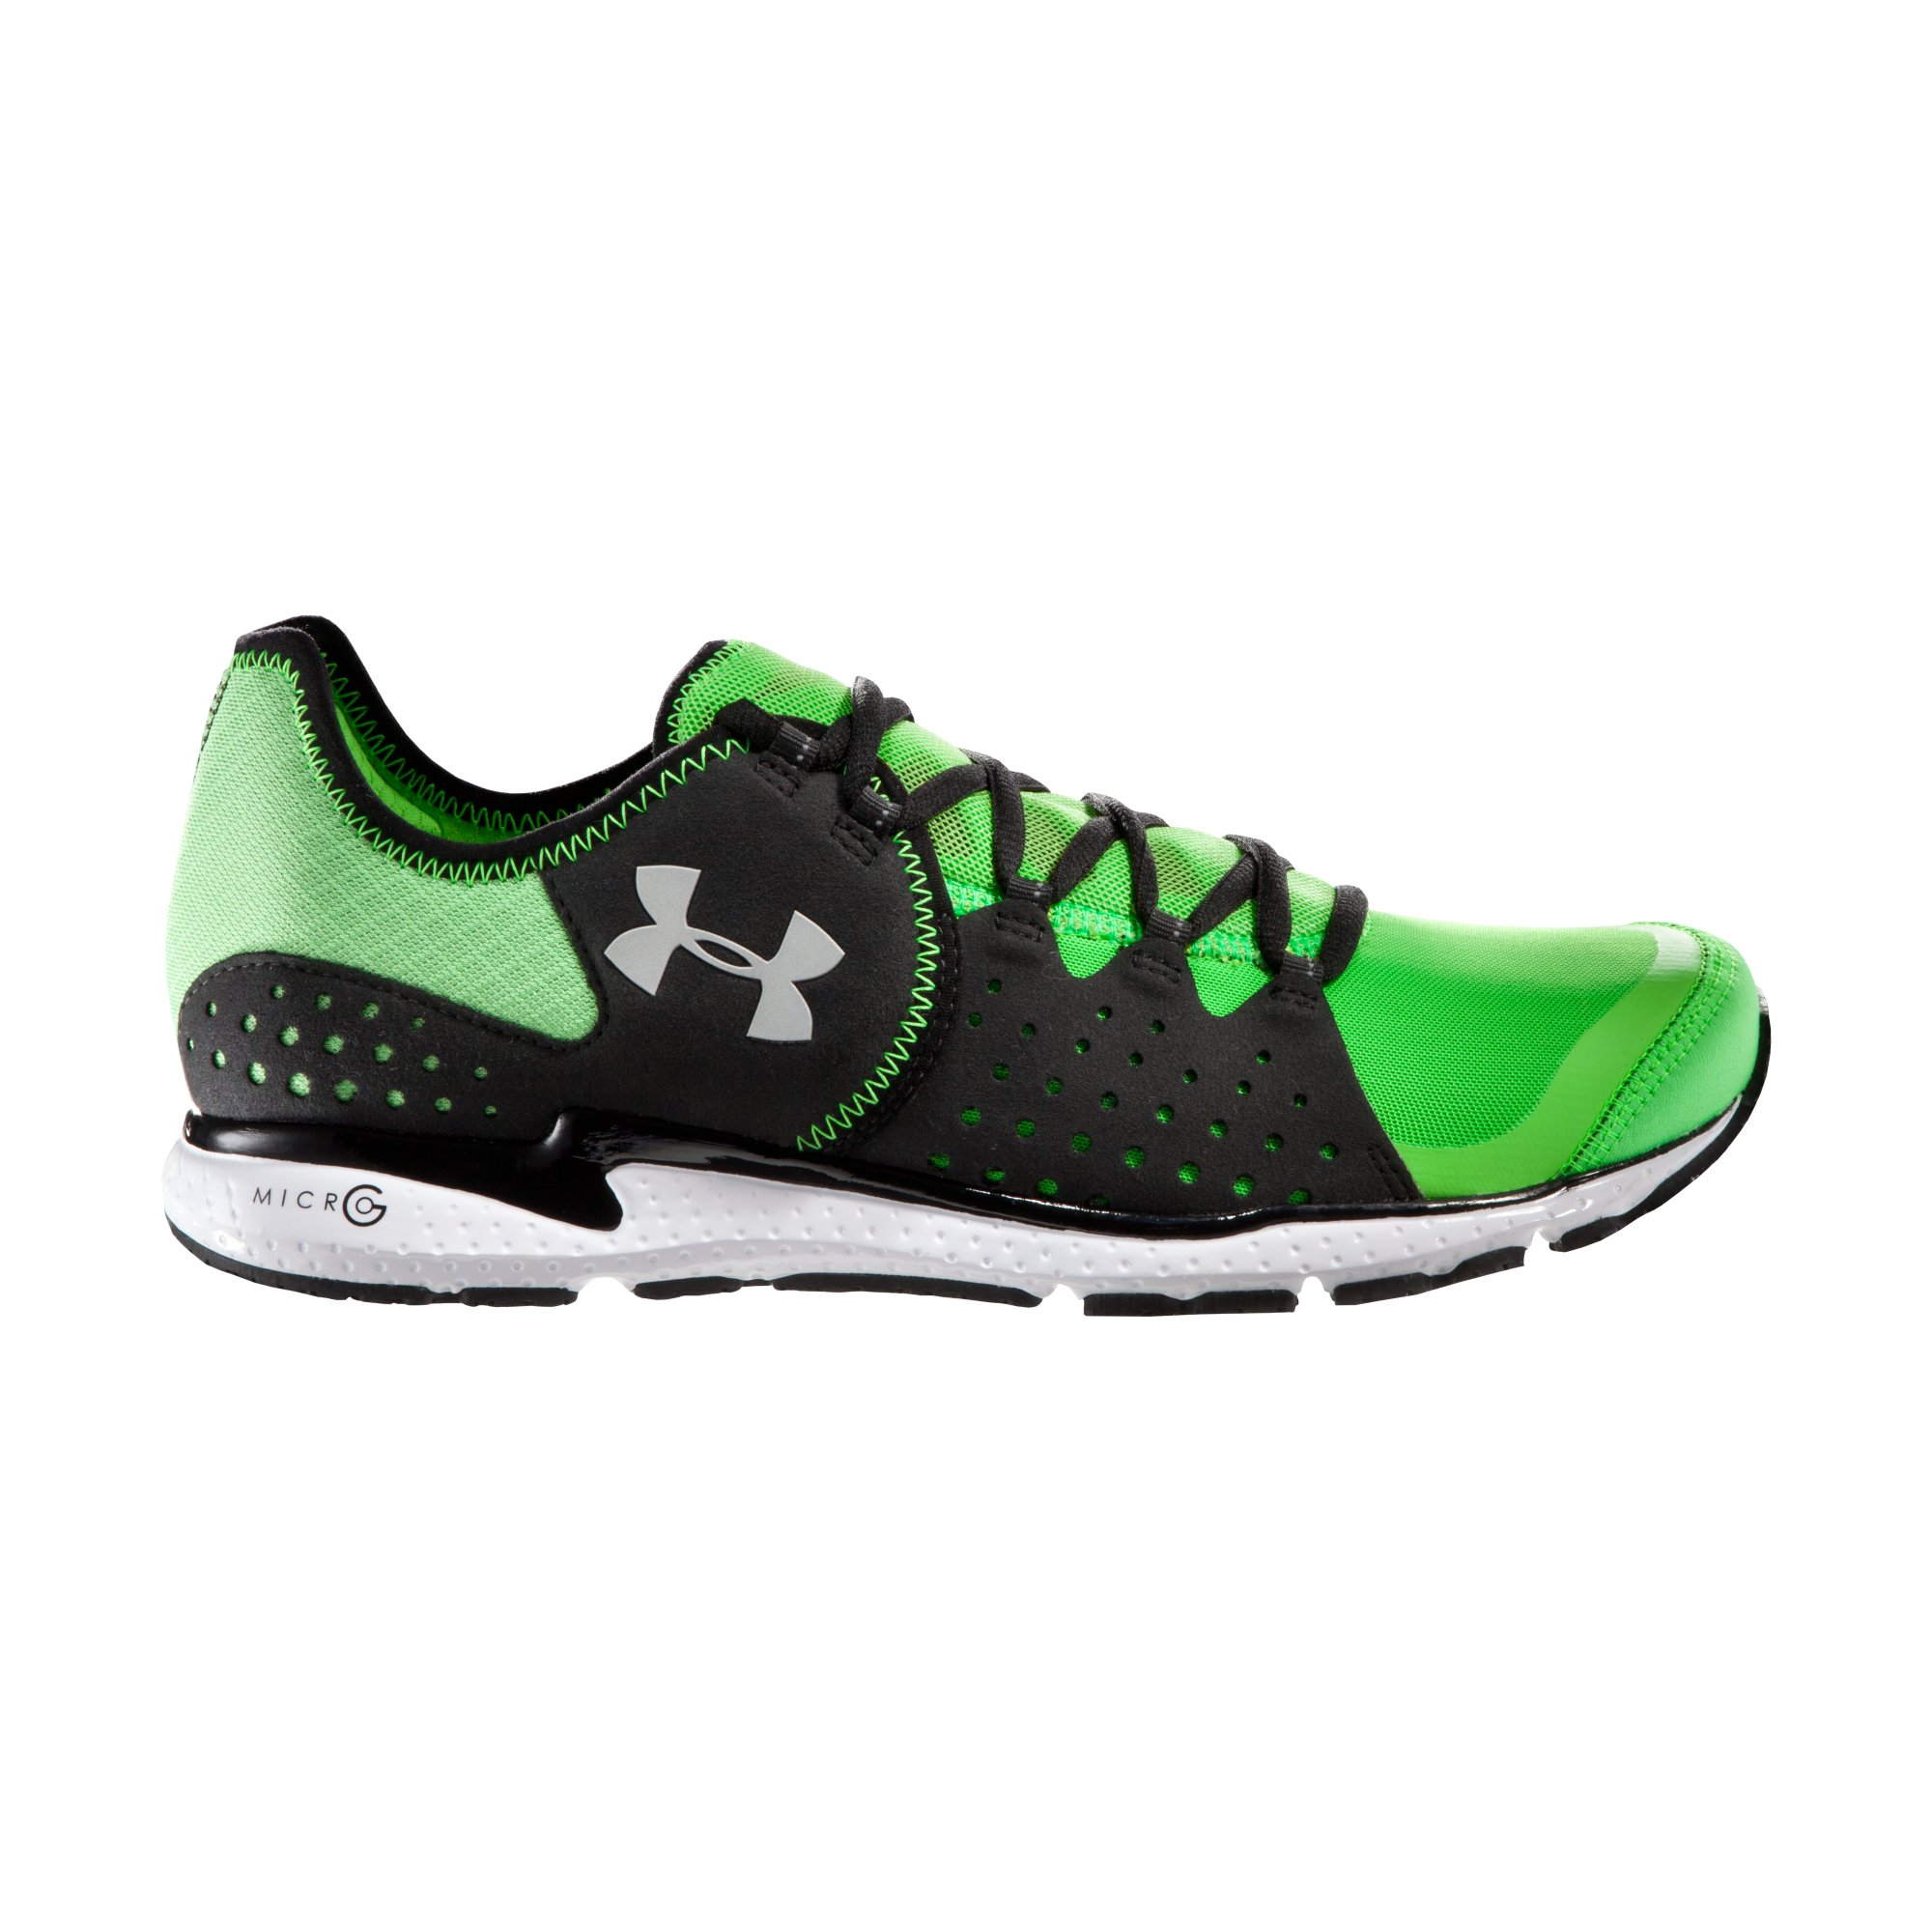 Since , Under Armour has offered the best in performance sports apparel, shoes and accessories. Gear up for greatness with Cash Back at Ebates on innovative athletic apparel for your whole family.